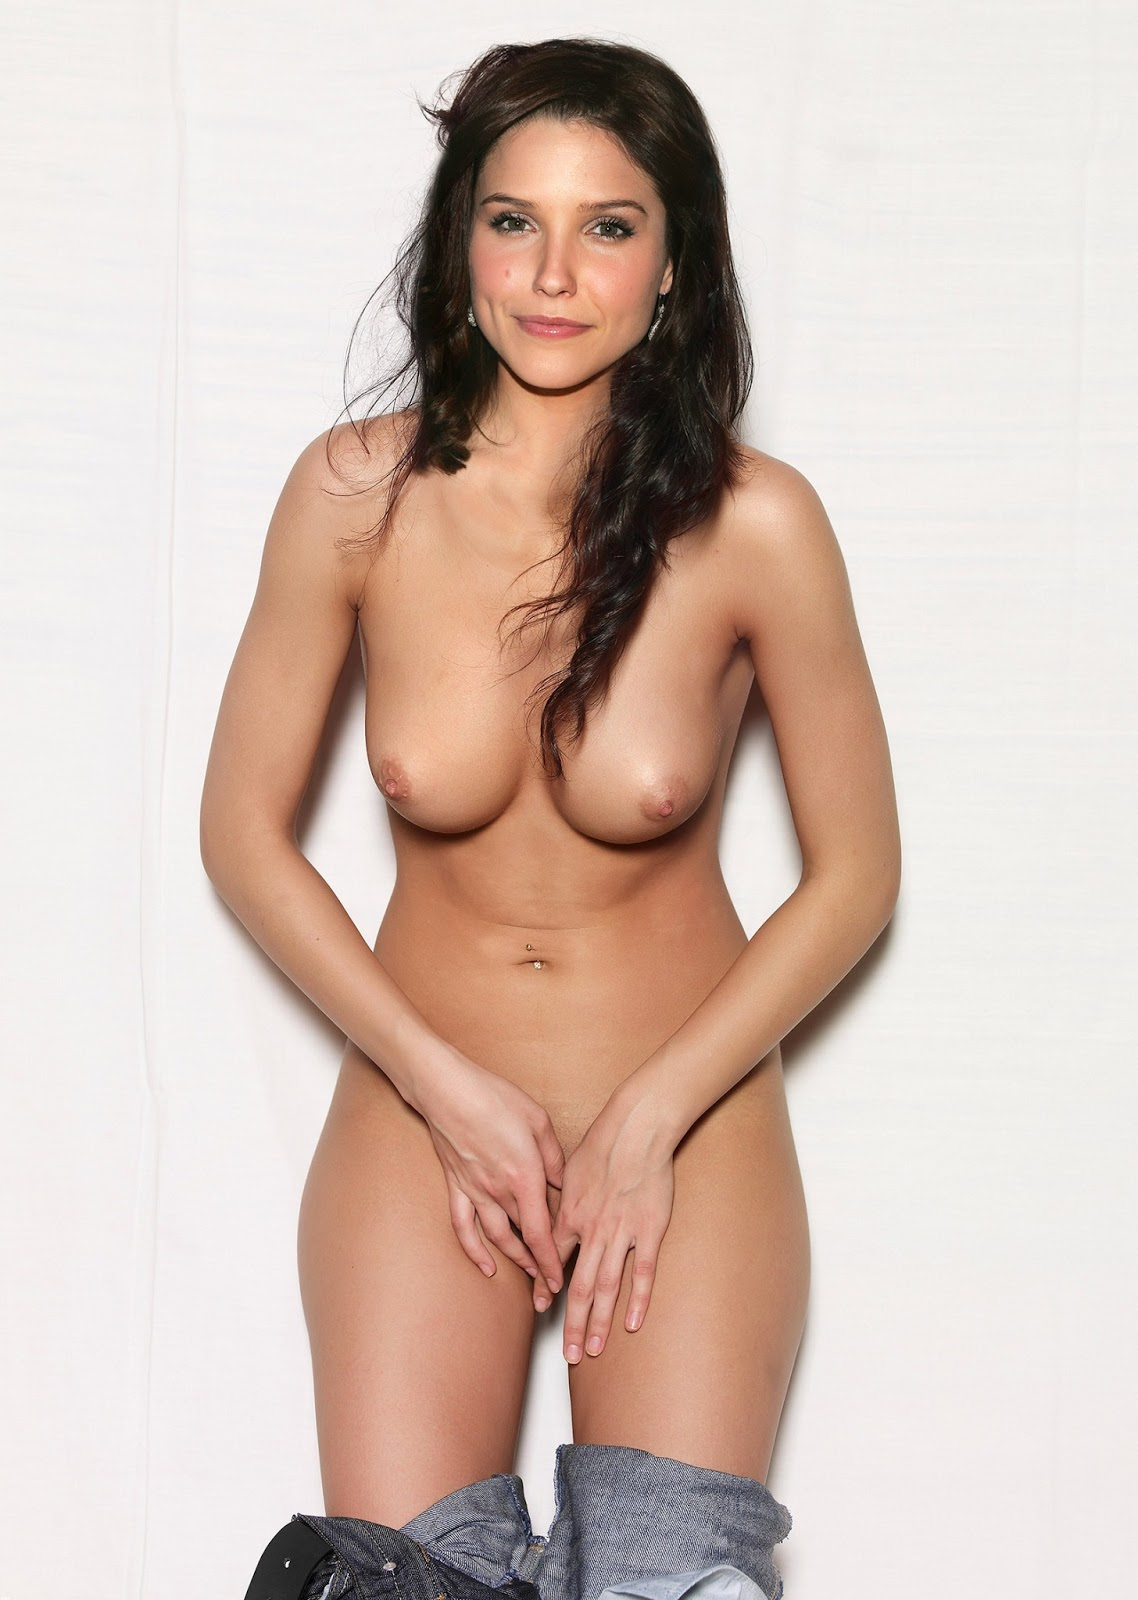 Best naked pictures of actress